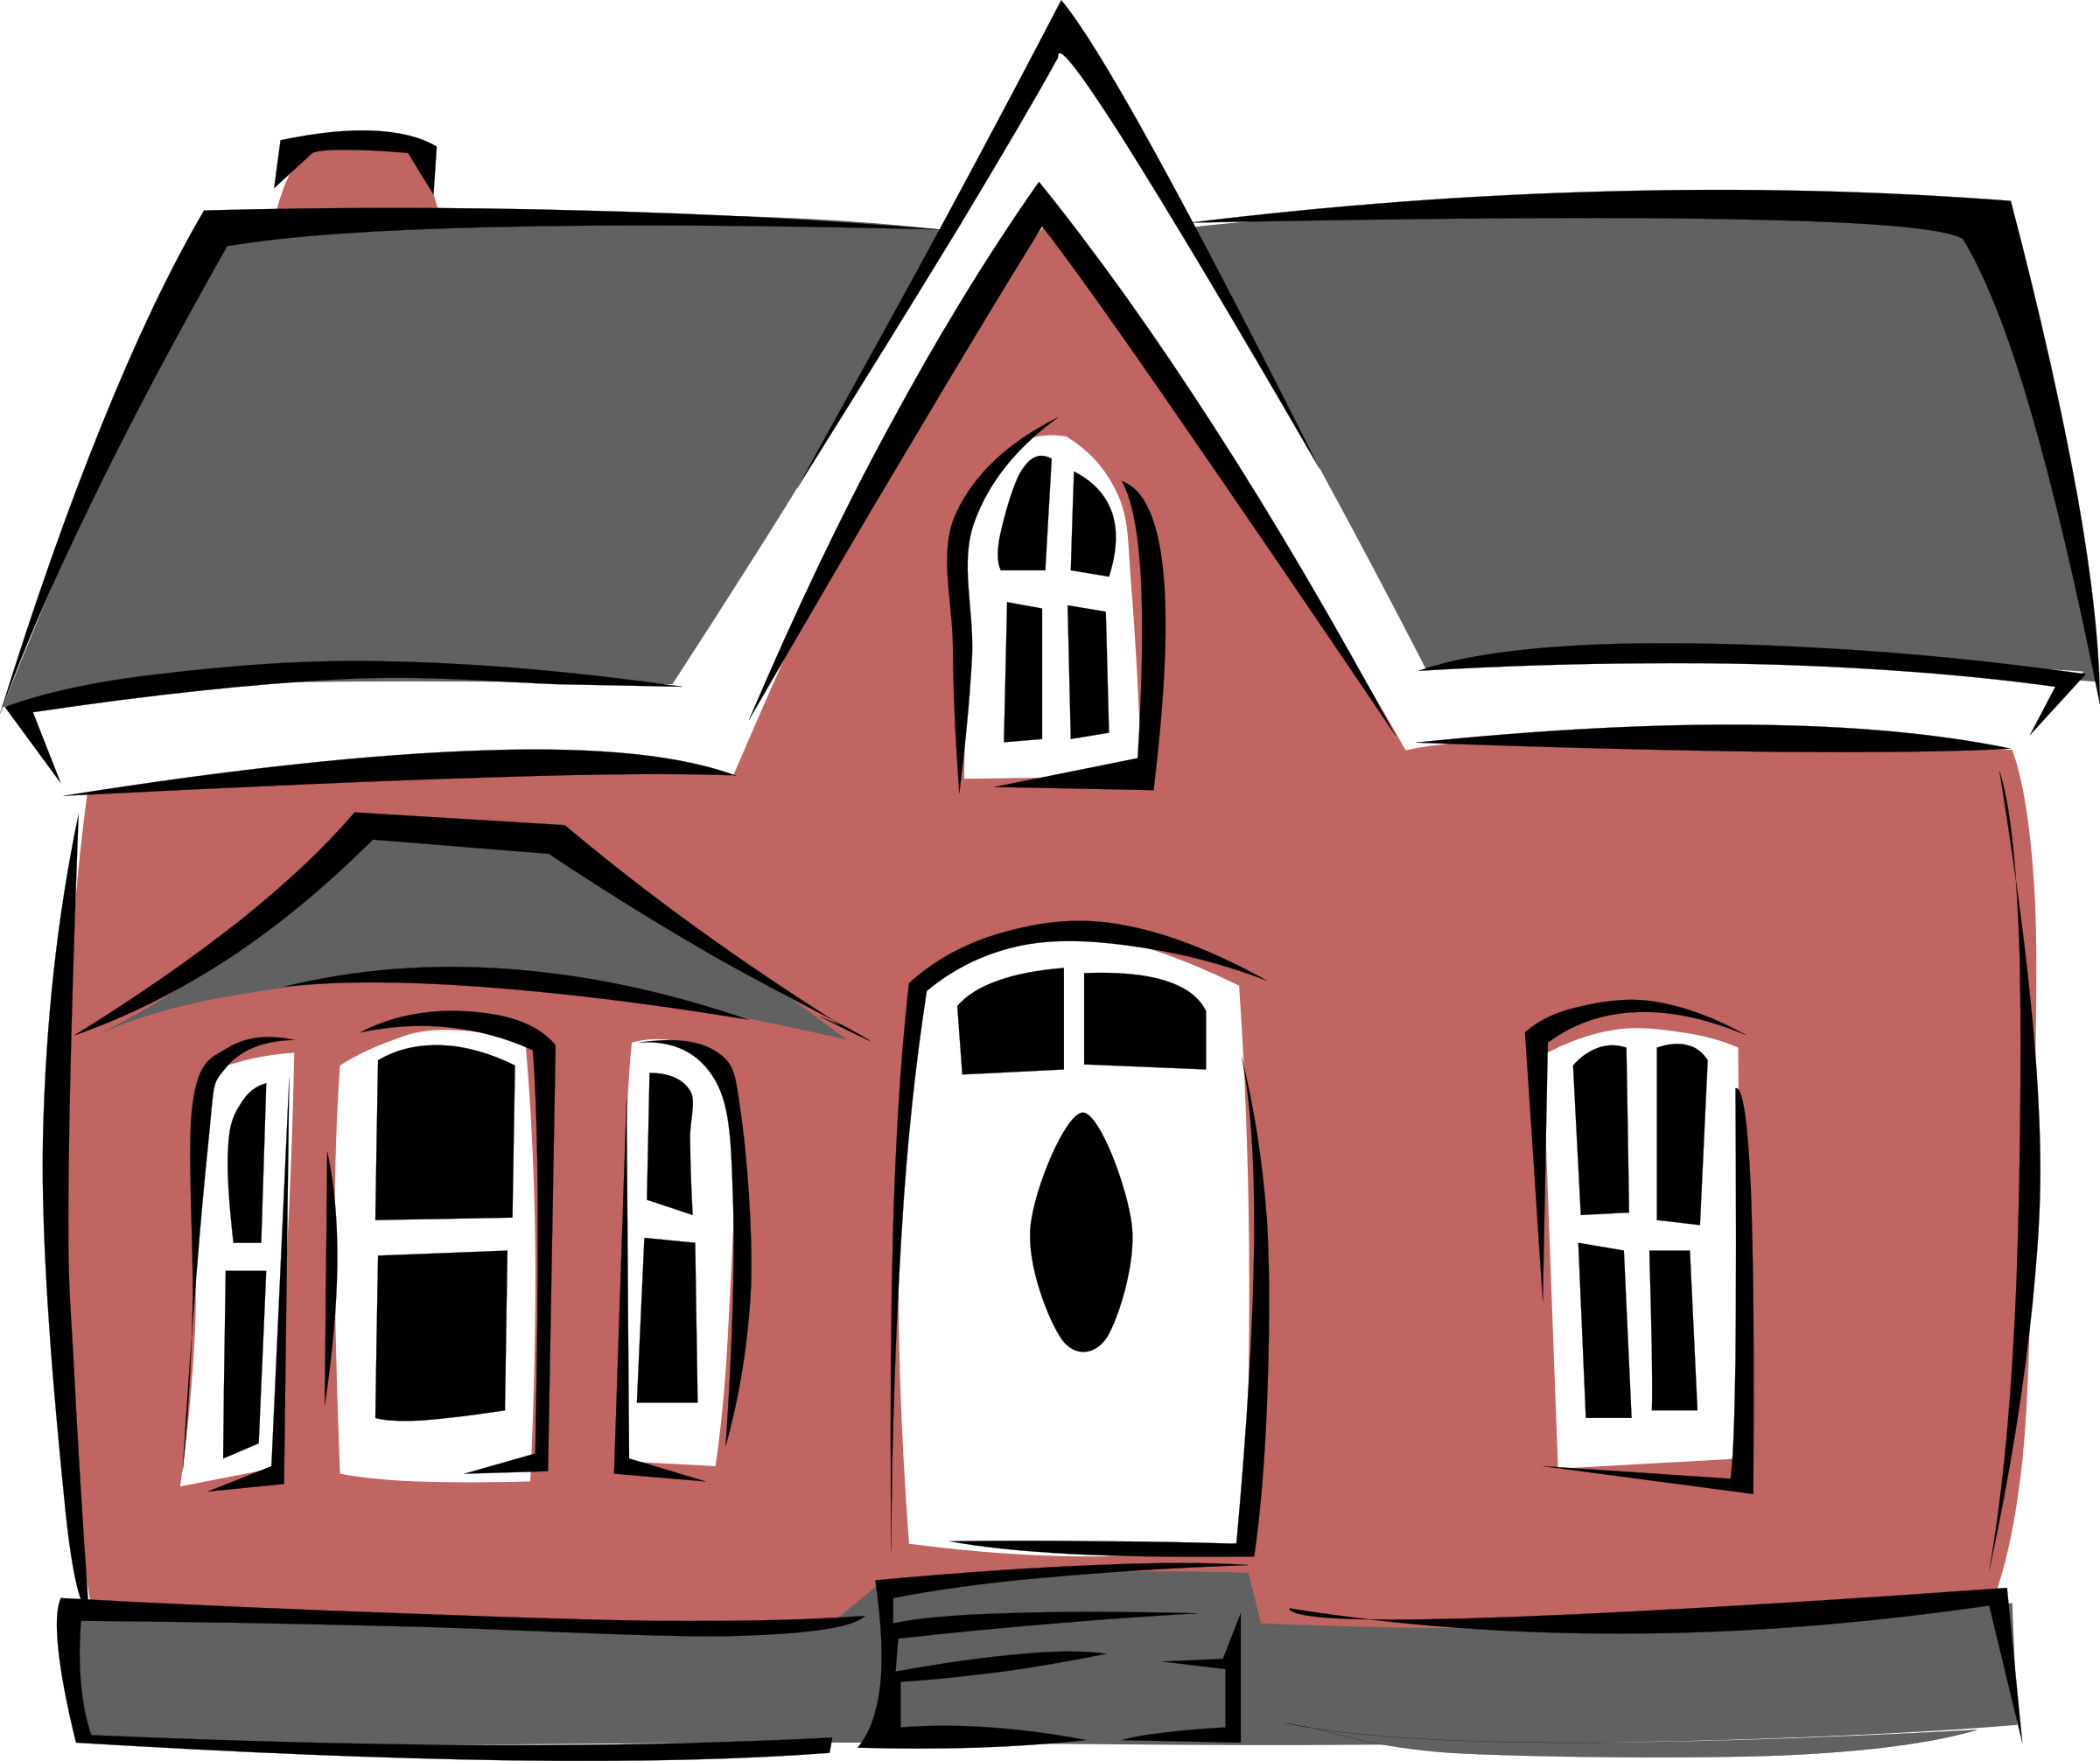 royalty free Building clipart charity. Small house by gerald